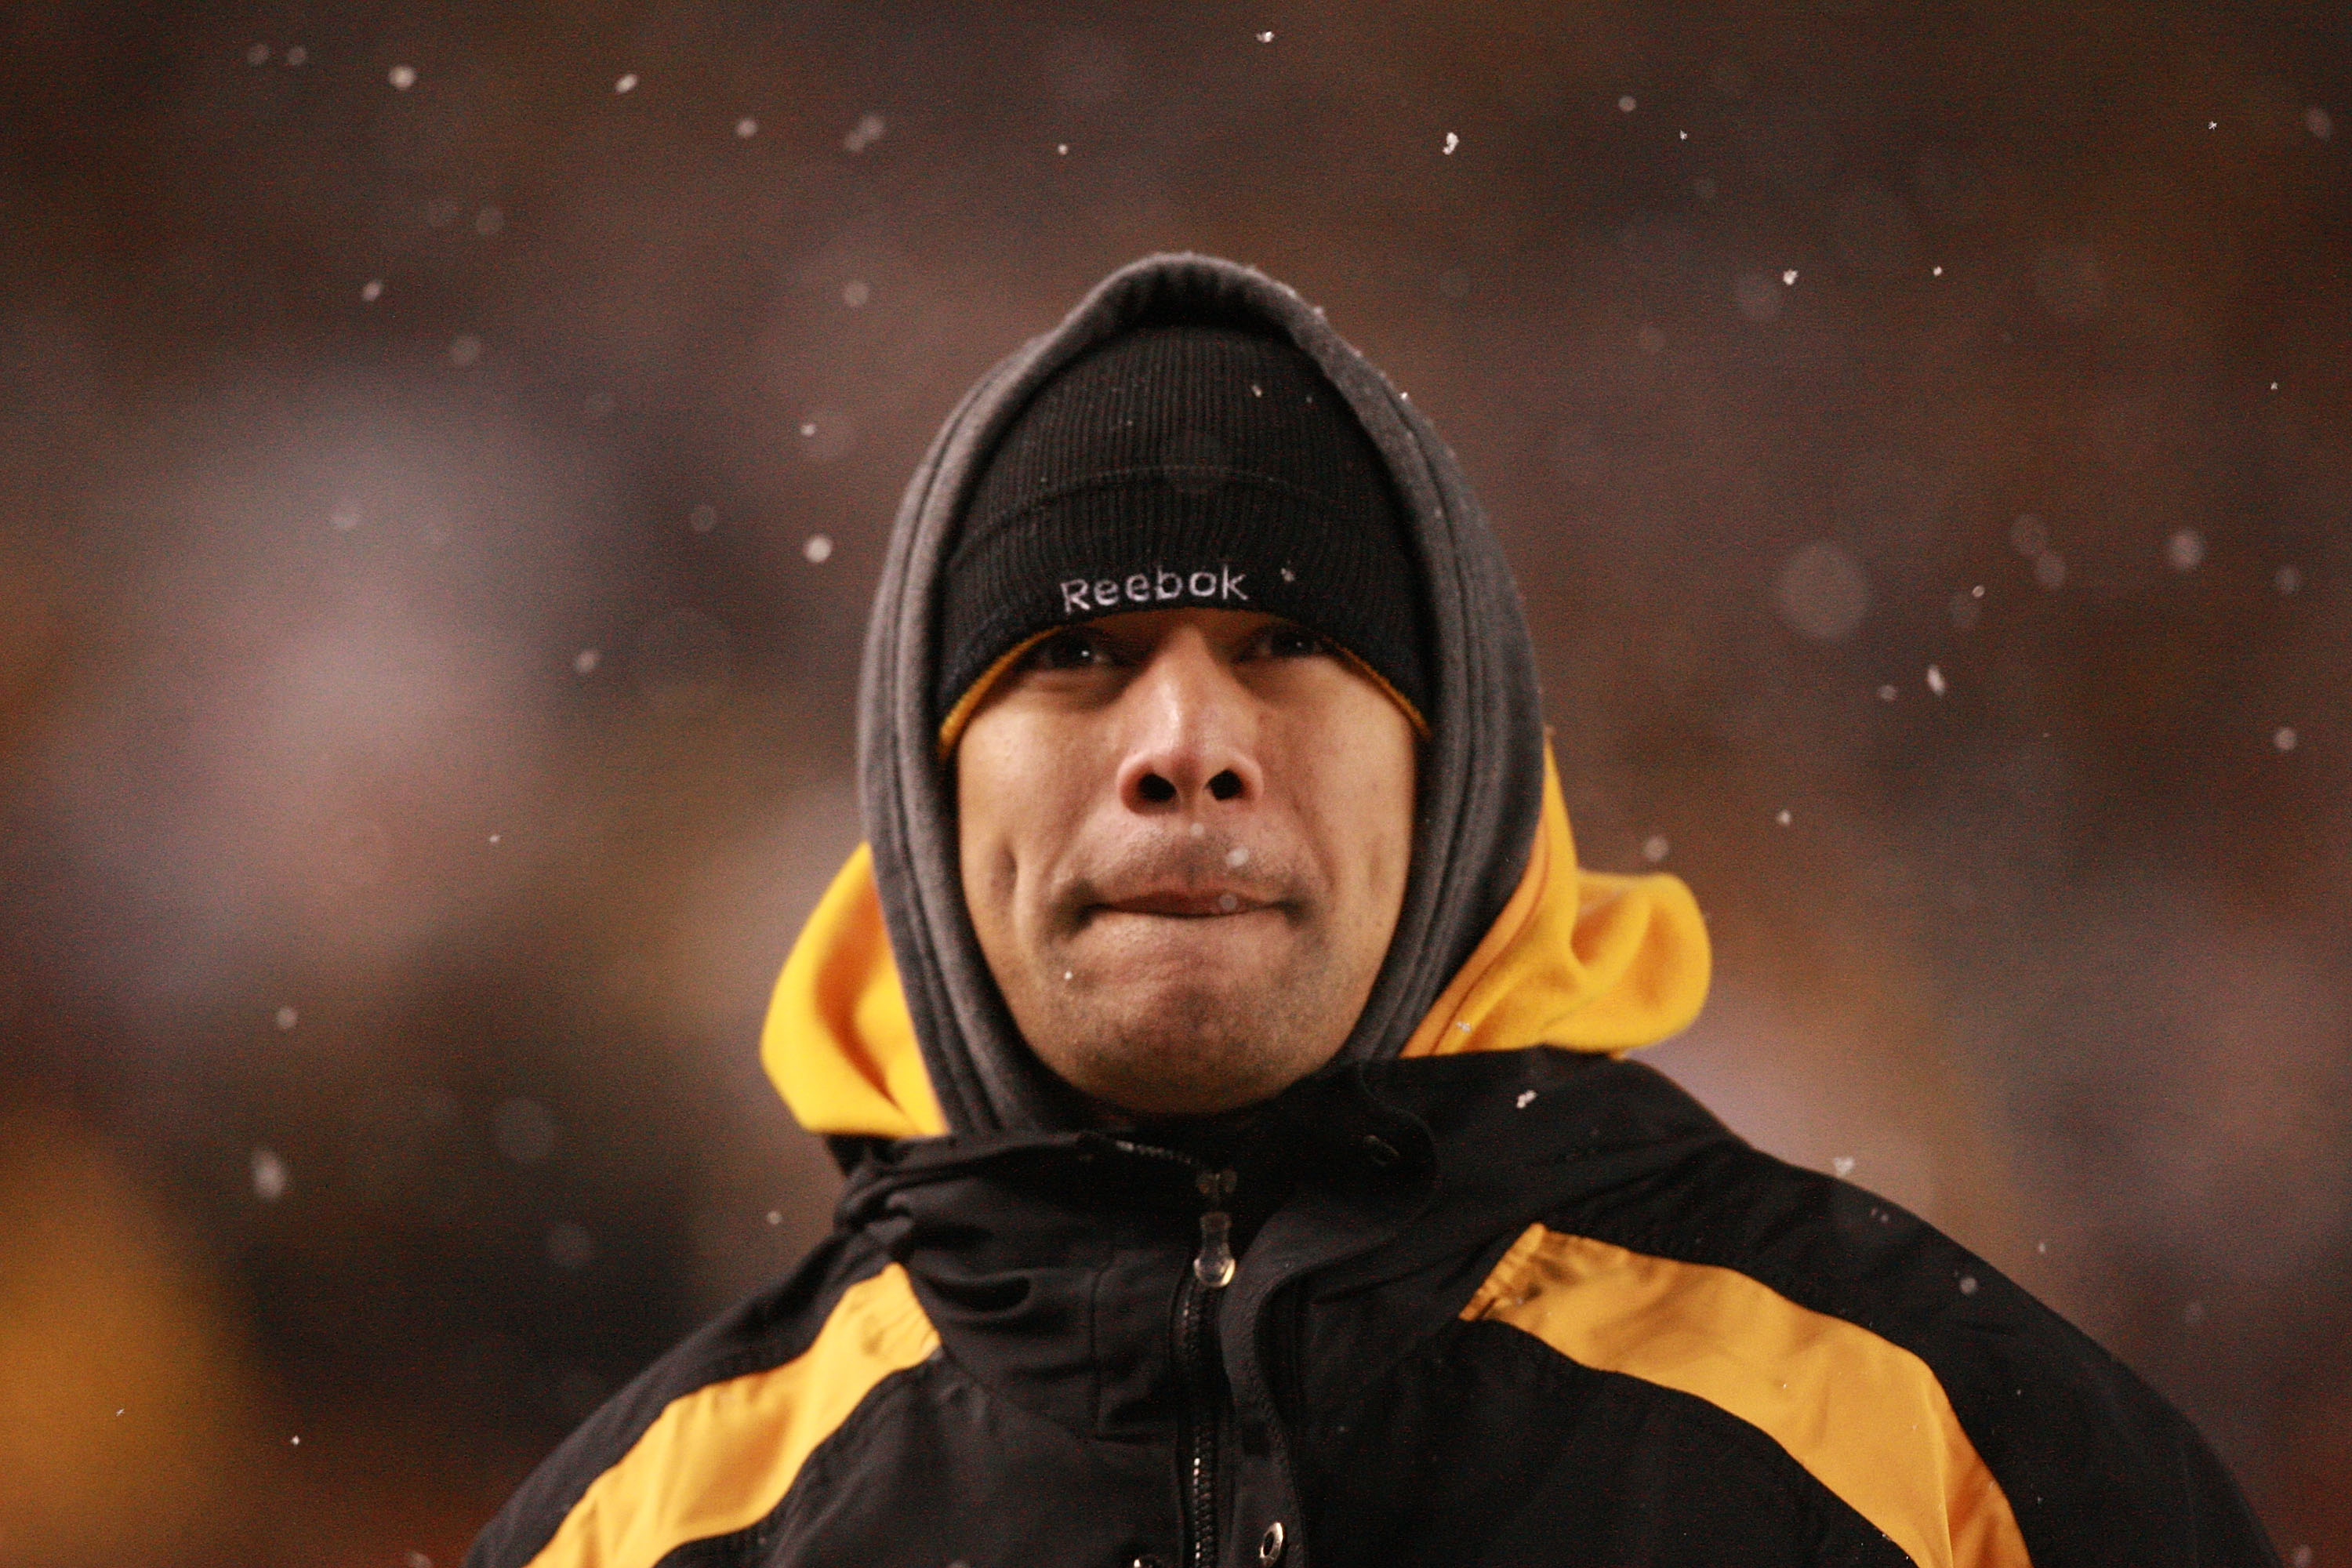 PITTSBURGH - DECEMBER 19:  Troy Polamalu of the Pittsburgh Steelers is seen on the sideline during the game against the New York Jets at Heinz Field on December 19, 2010 in Pittsburgh, Pennsylvania.  (Photo by Karl Walter/Getty Images)